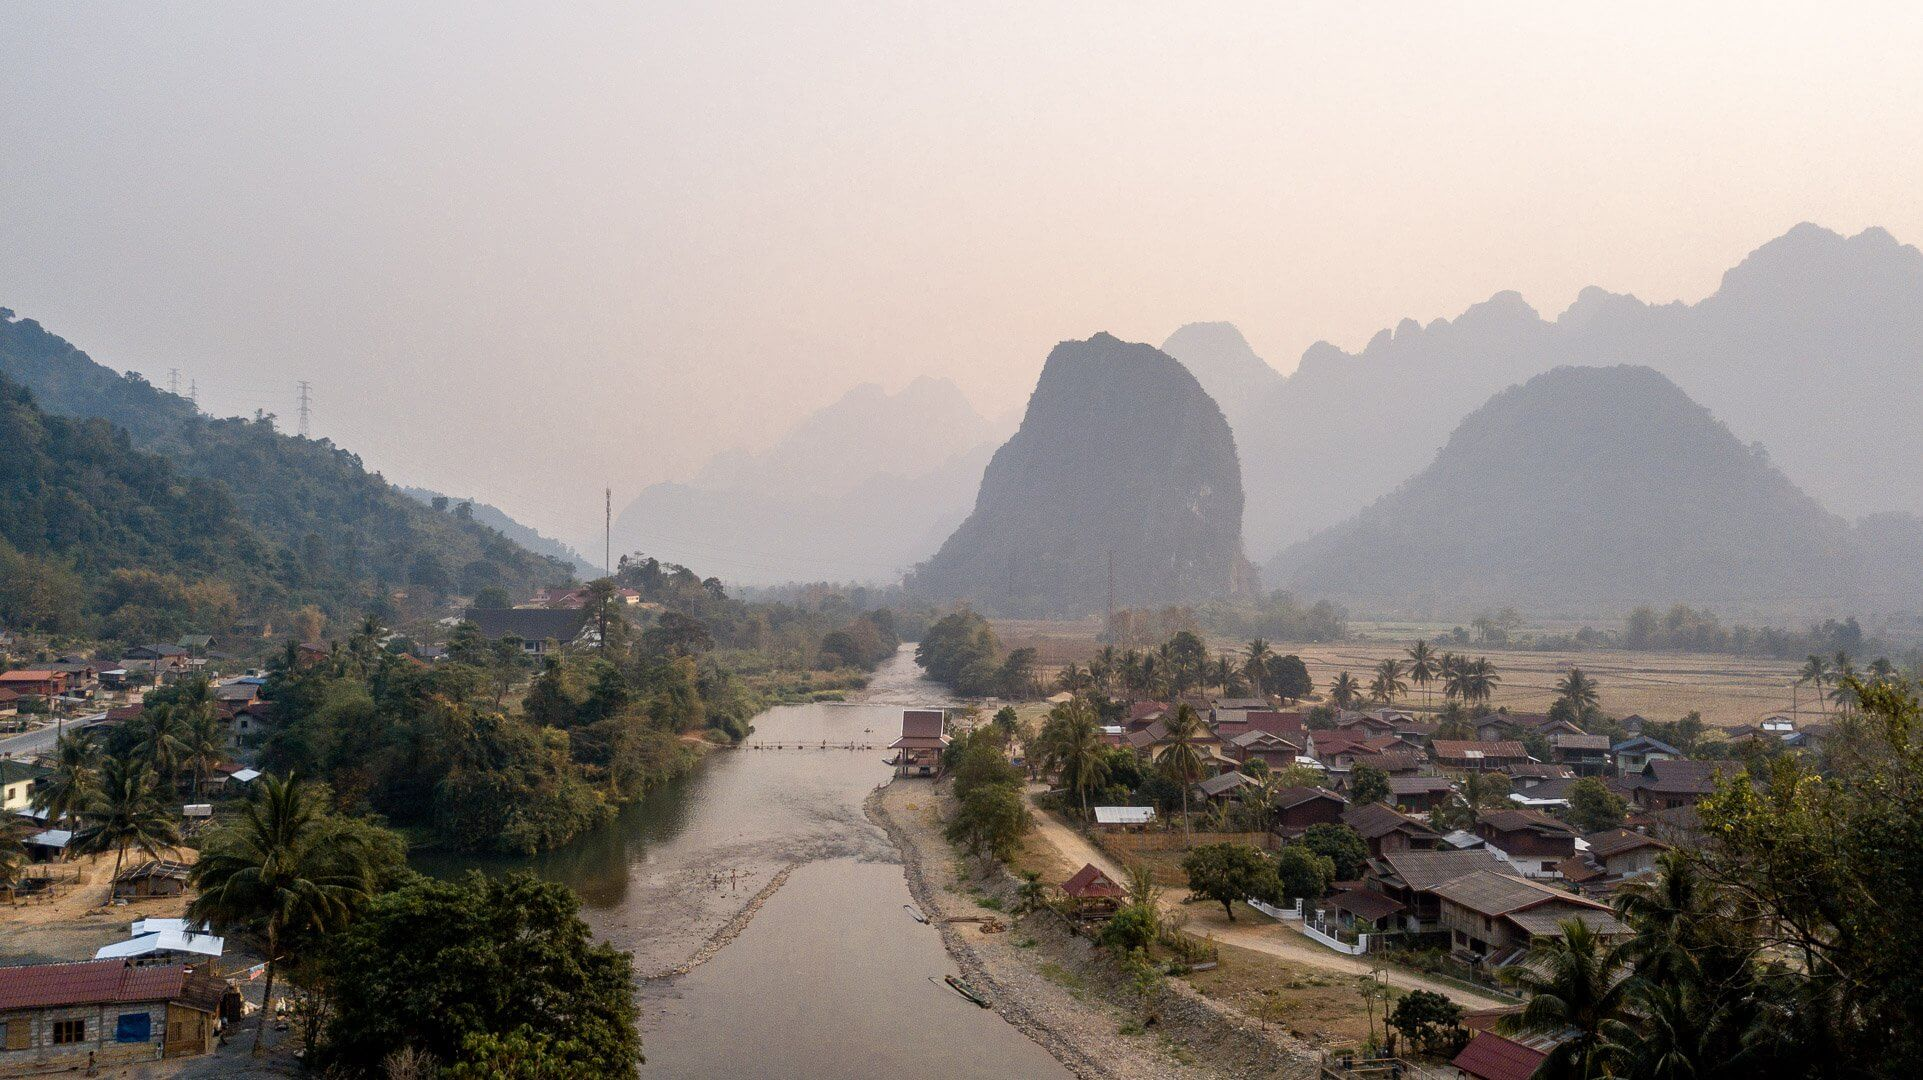 View of Pha Tang village in Laos from a drone